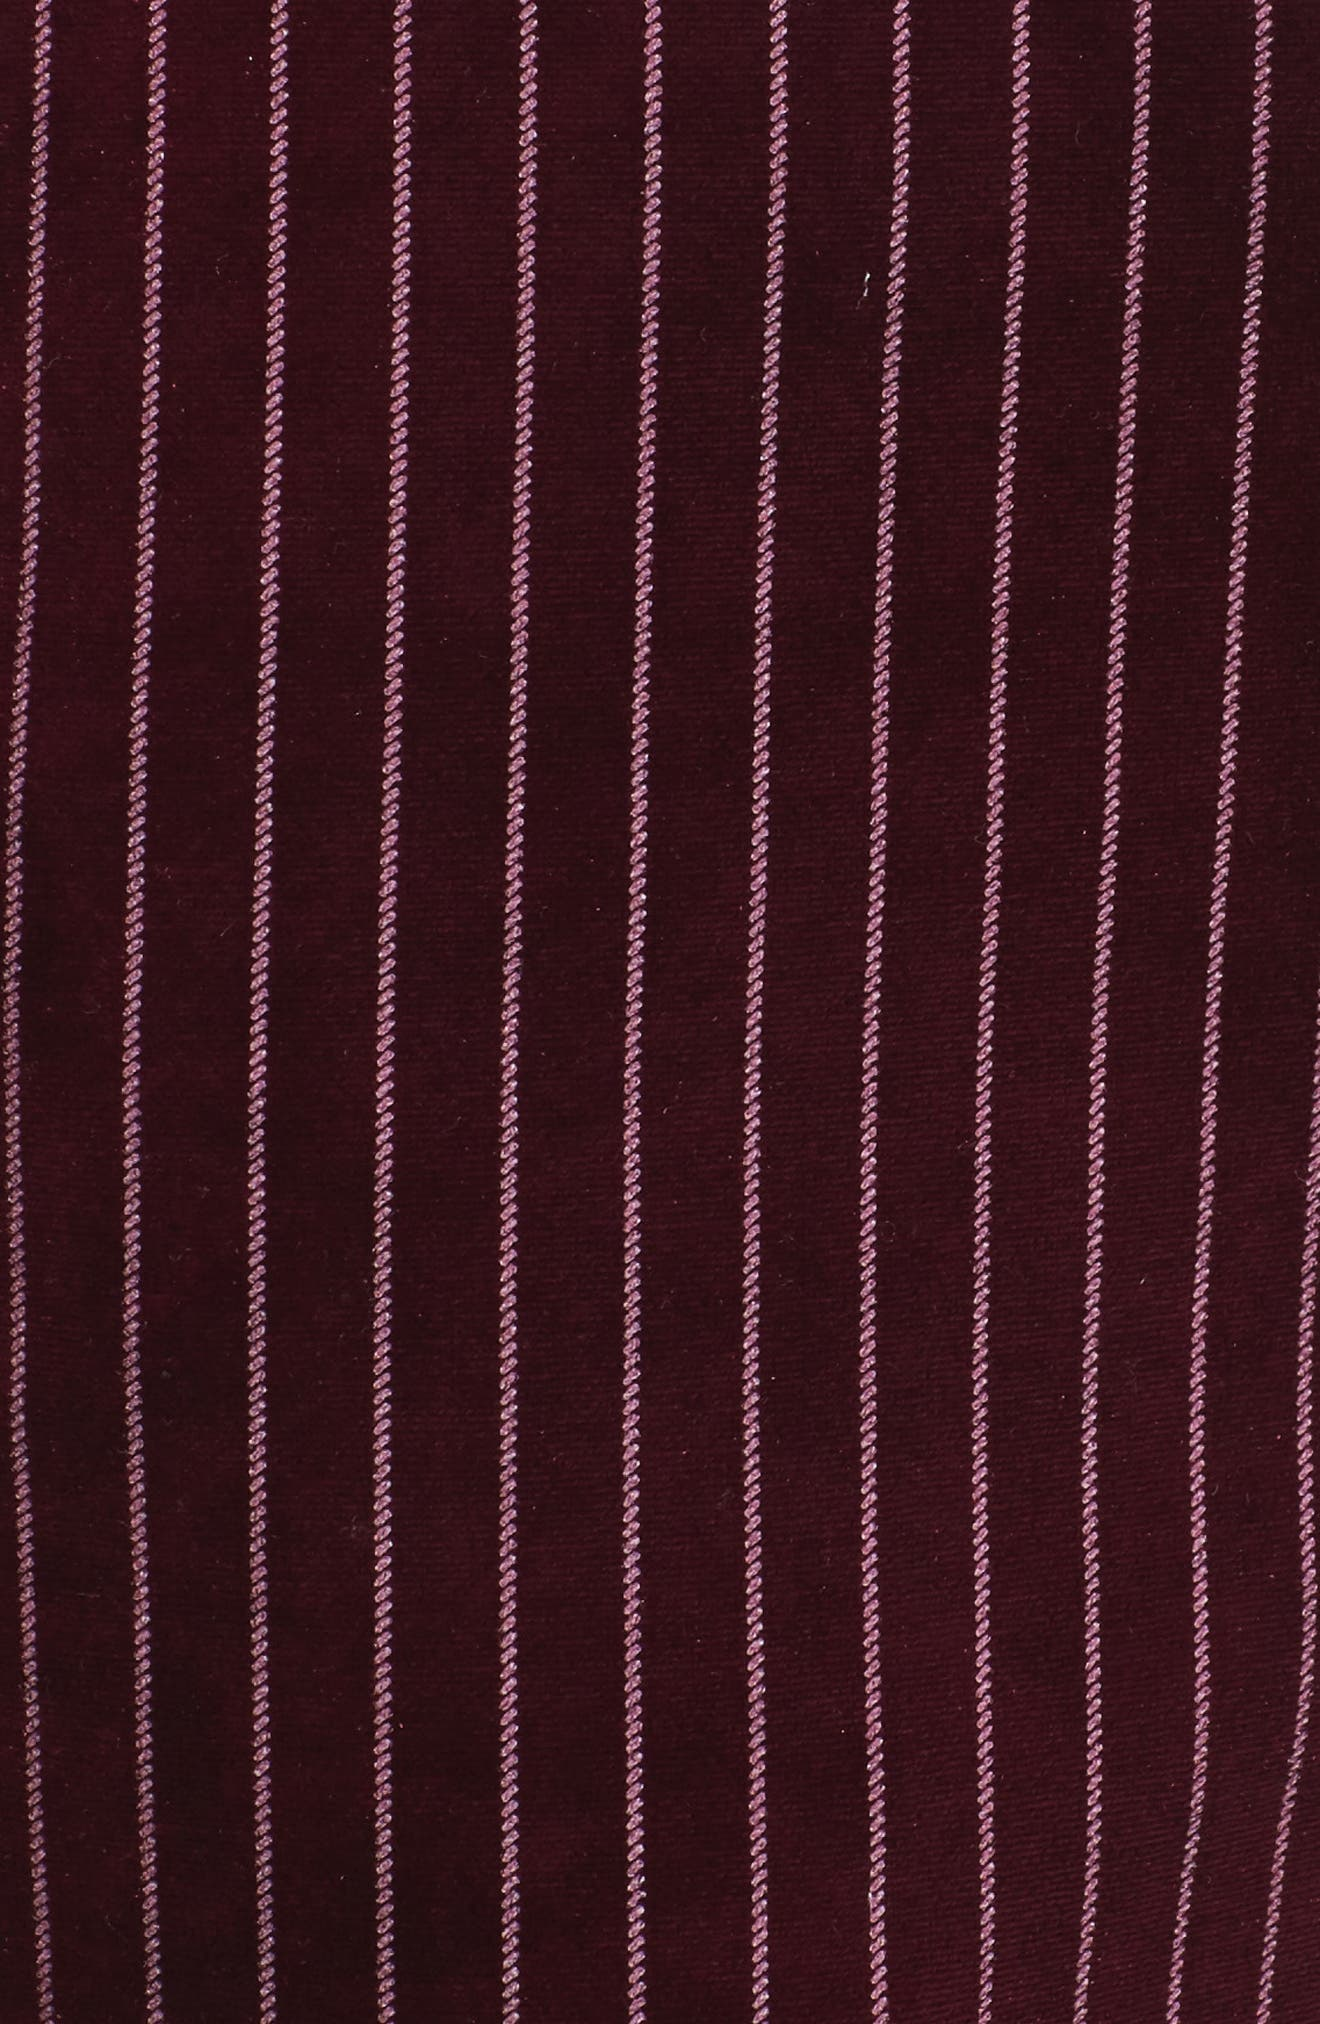 Velour Ankle Trousers,                             Alternate thumbnail 5, color,                             Red Tannin Dotted Stripe